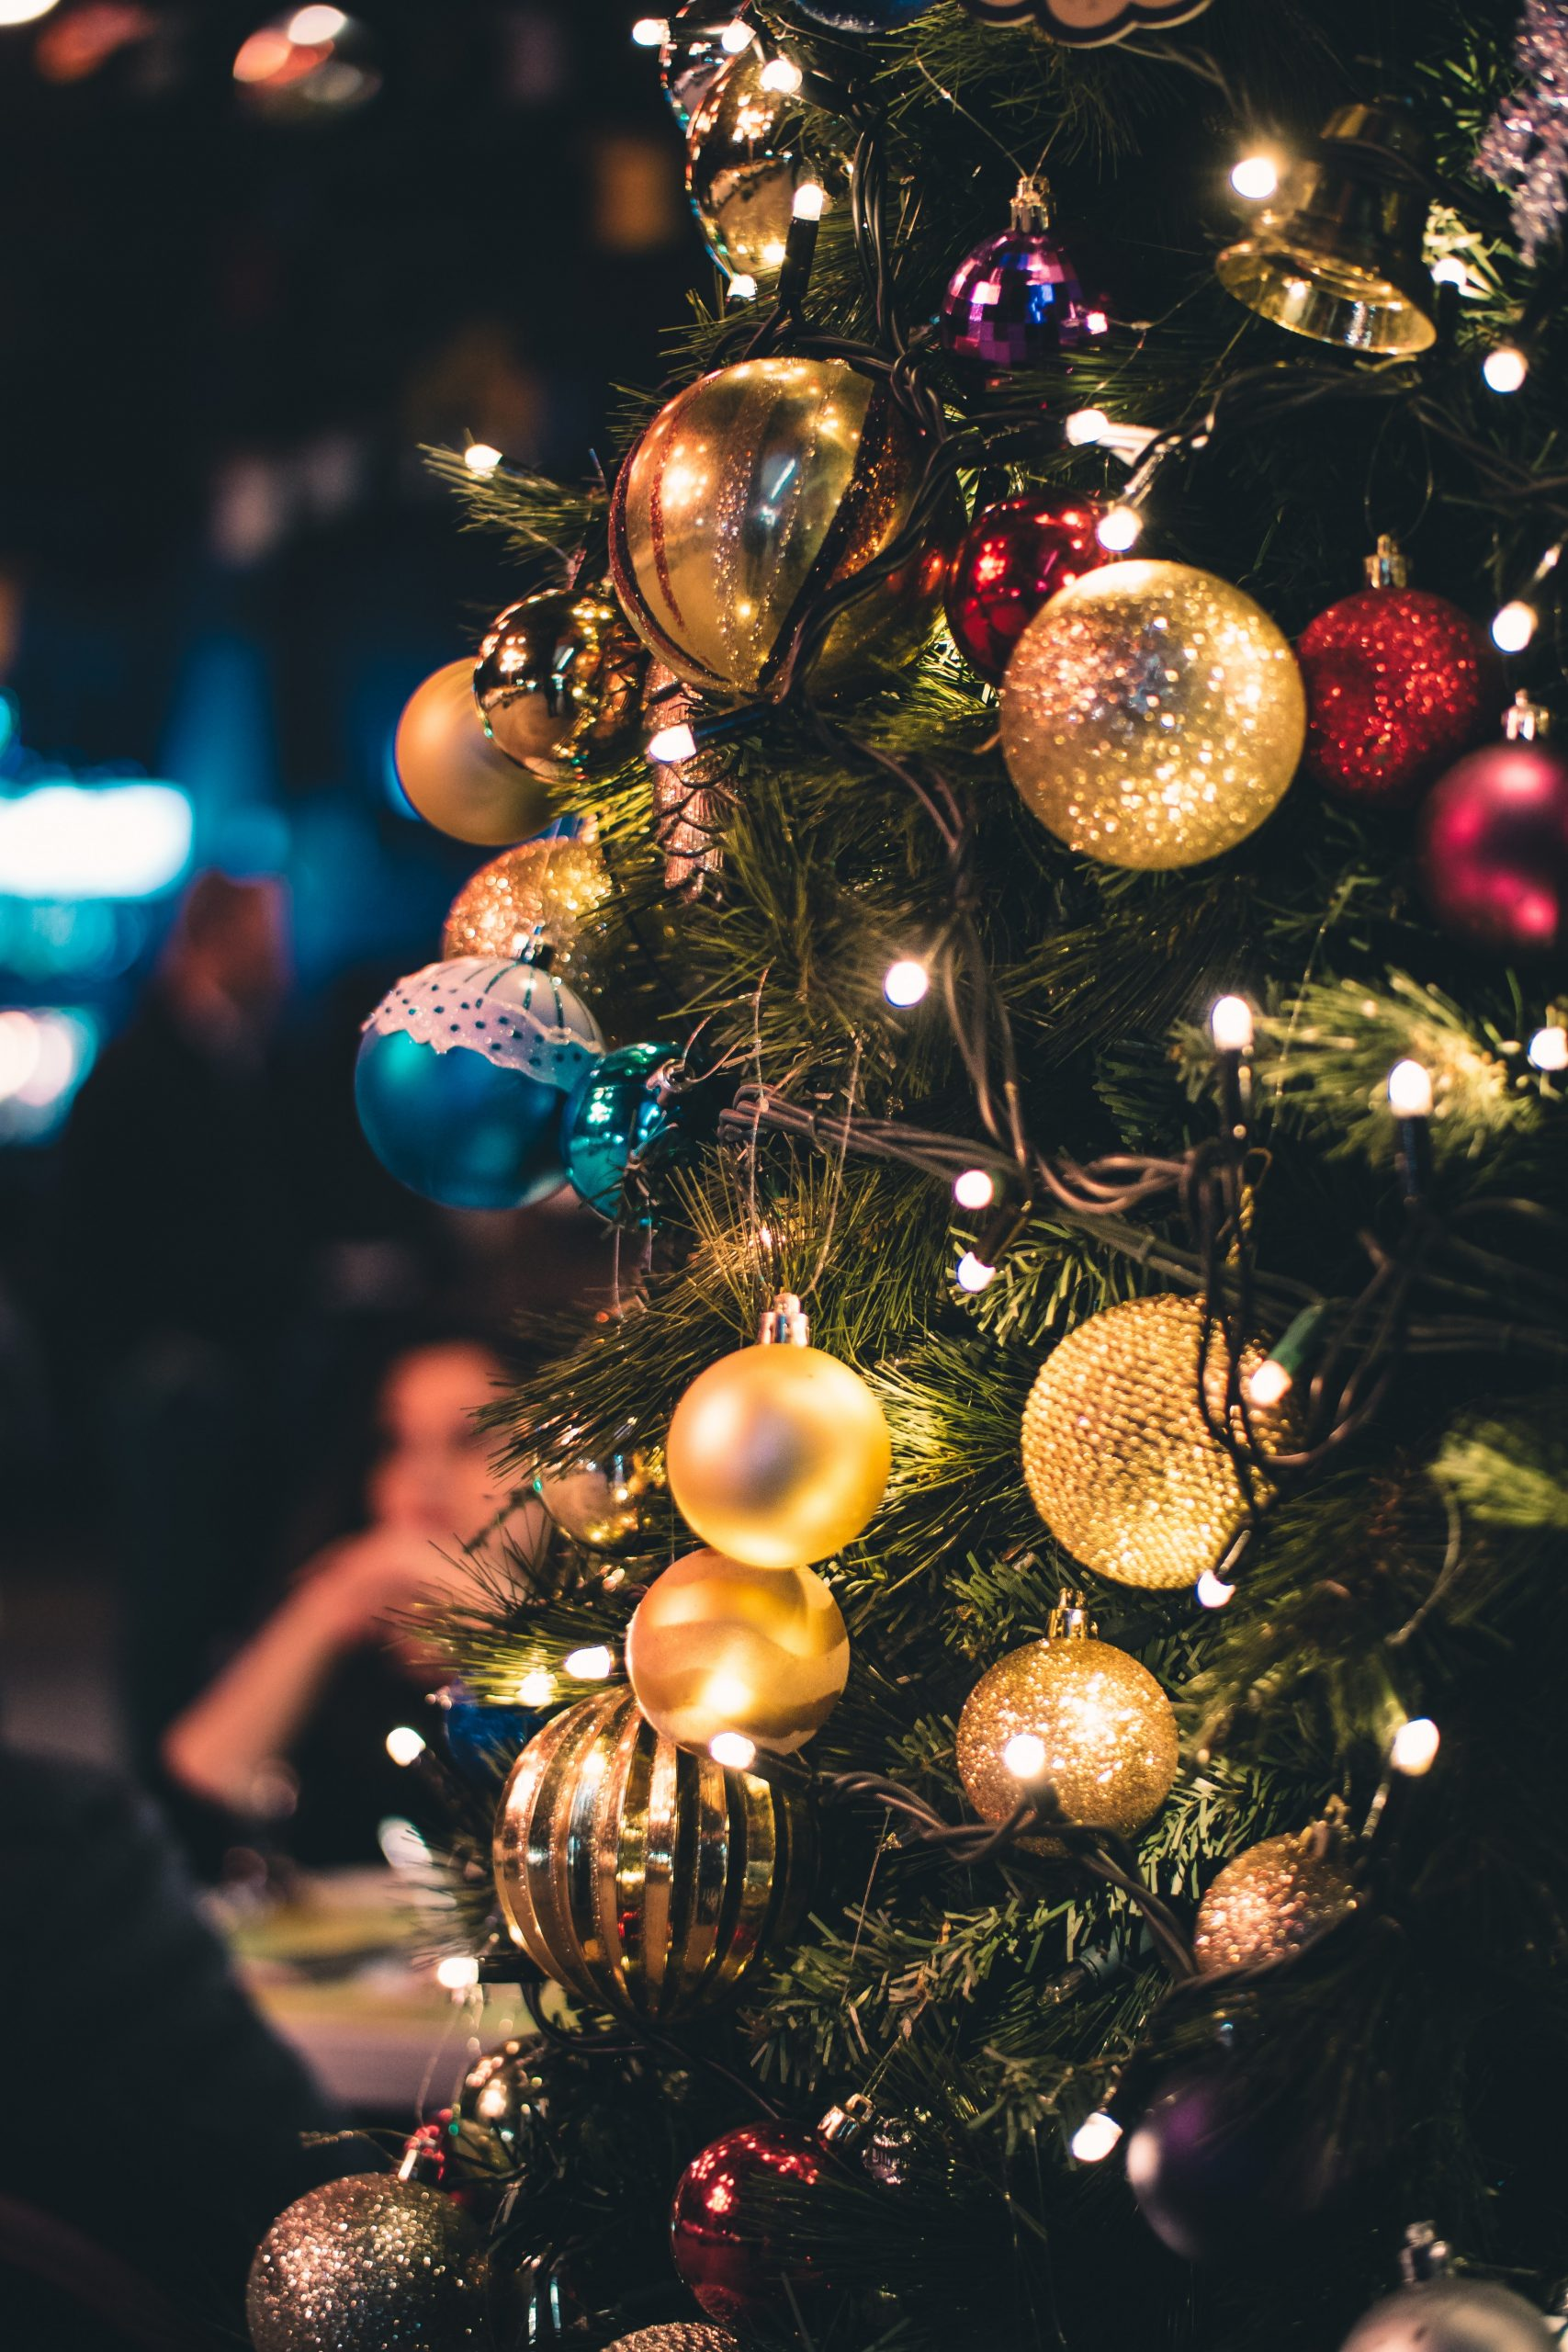 A Christmas tree decorated using a variety of baubles or balls.